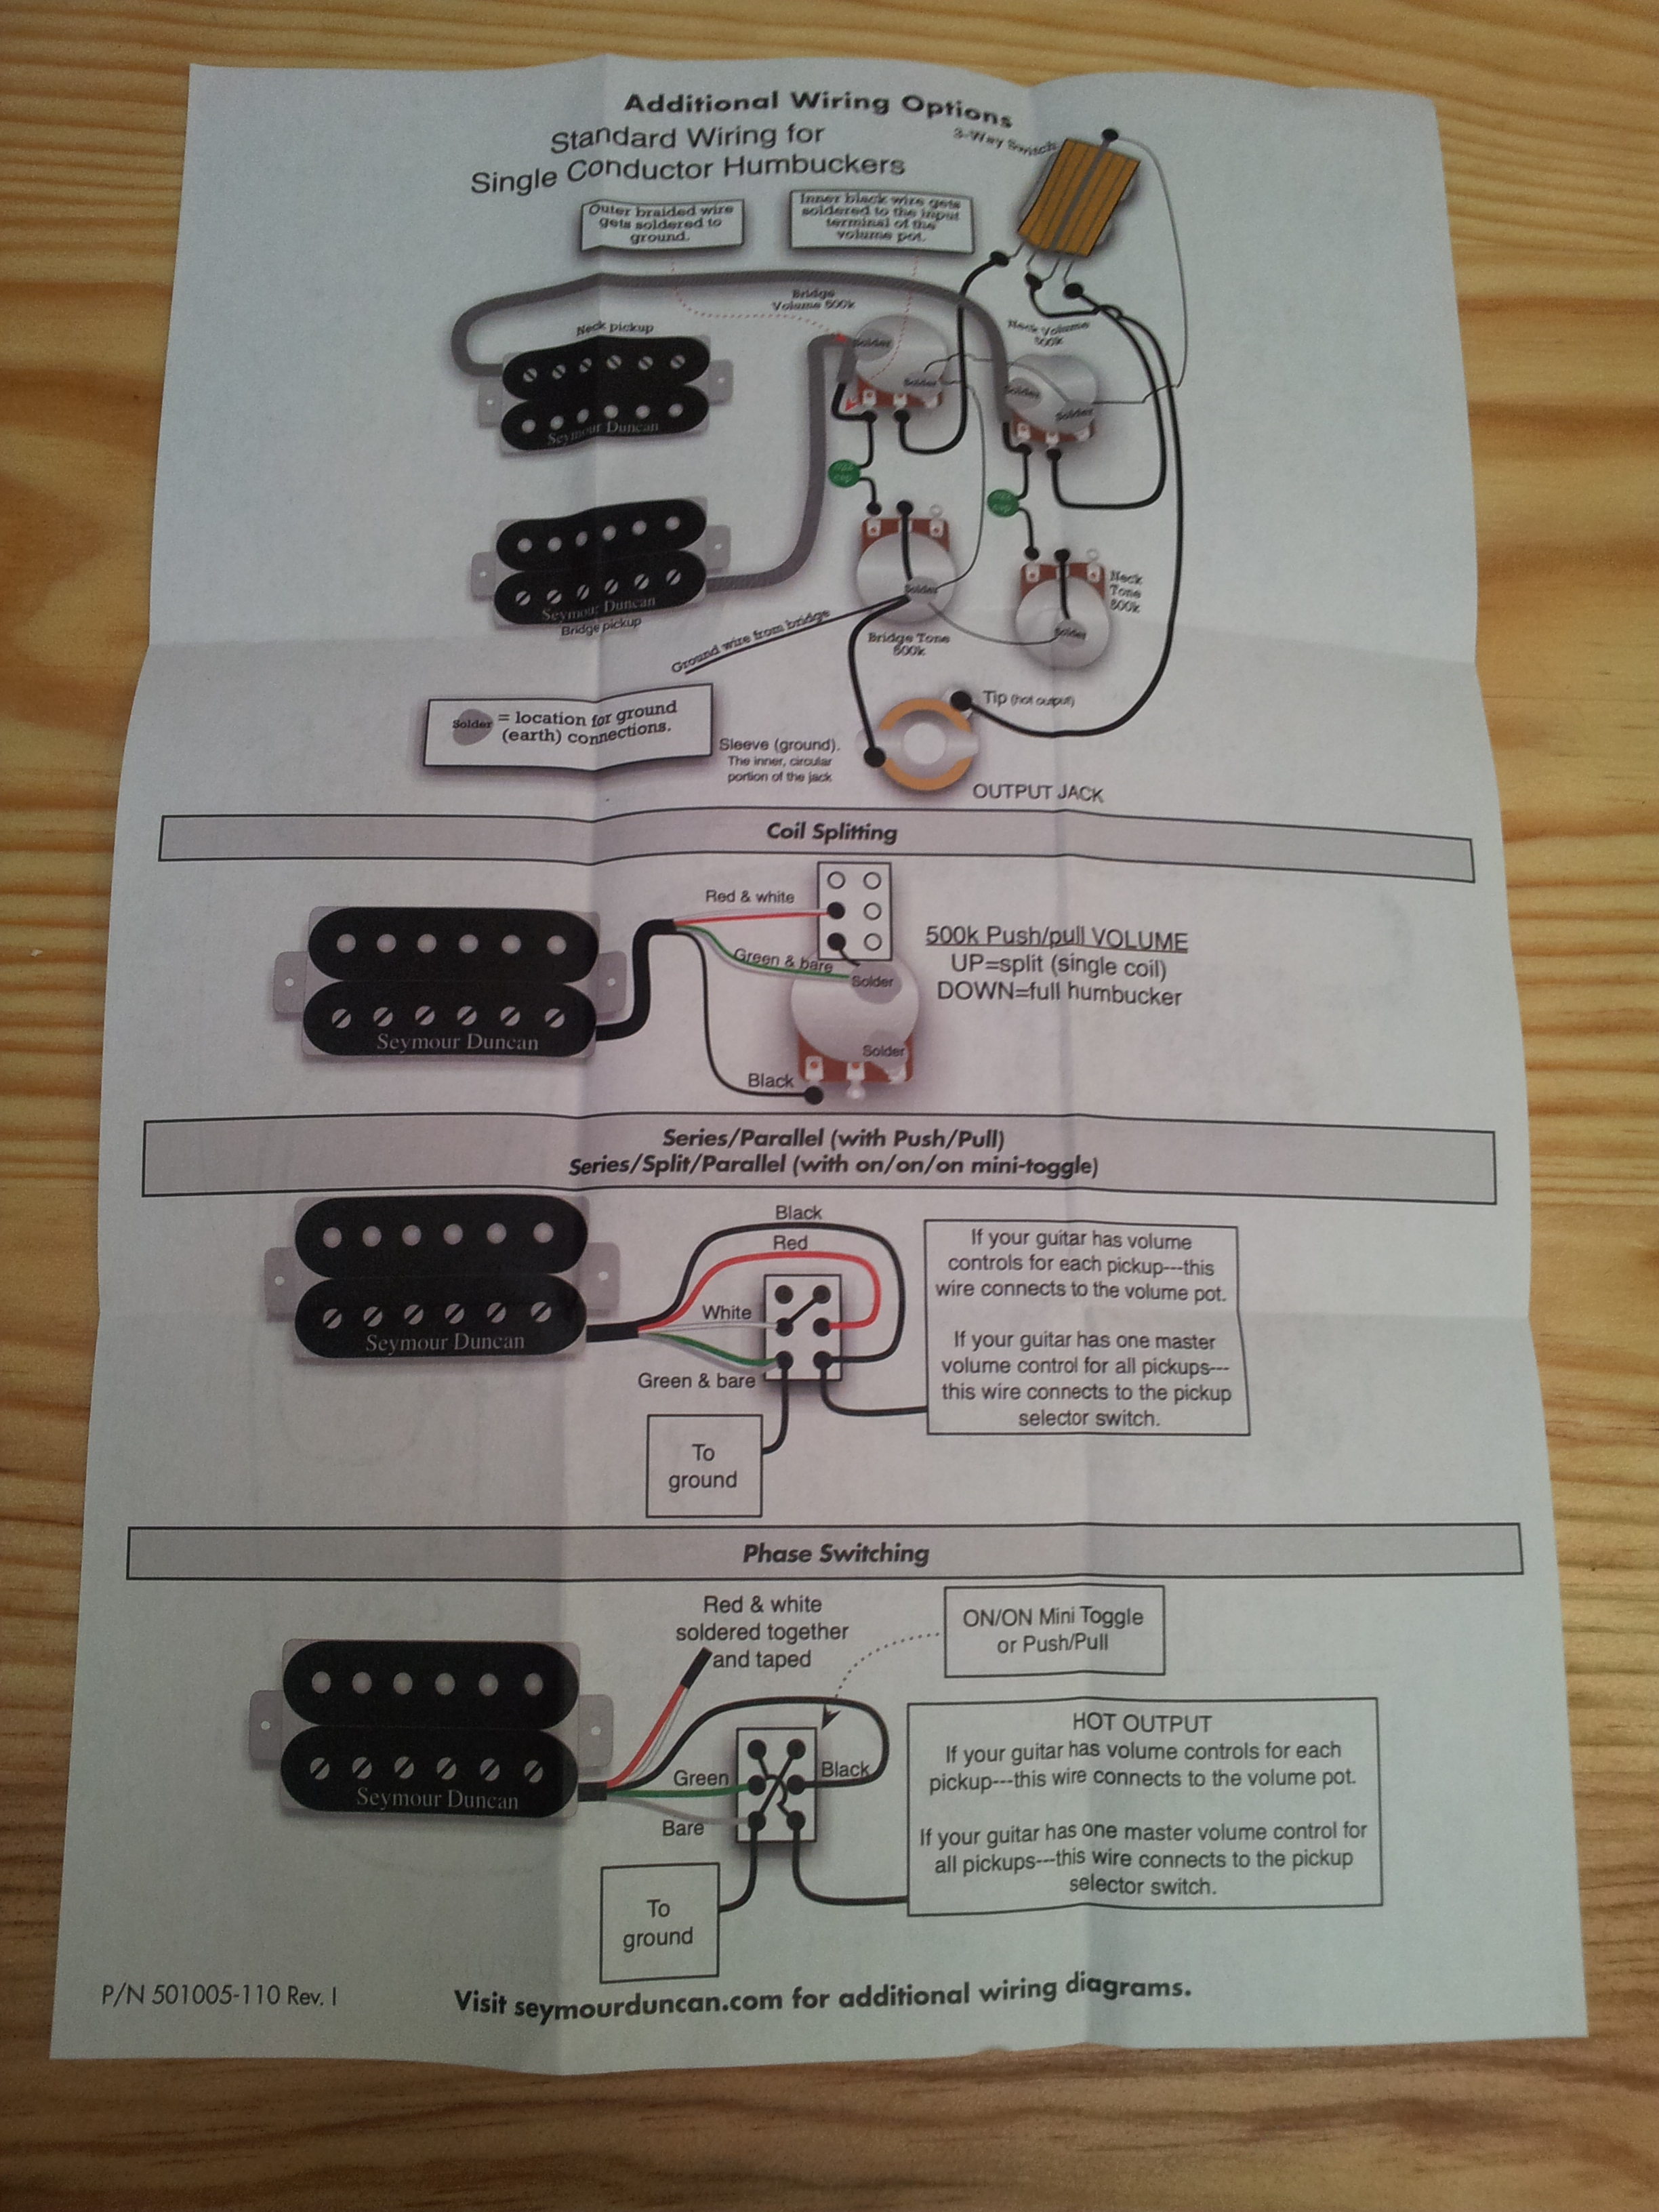 Sh 4 jb wiring diagram wiring diagram database seymour duncan sh 4 jb model black image 1560049 audiofanzine rh en audiofanzine com seymour duncan sh 4 jb wiring diagram 3 way switch wiring diagram cheapraybanclubmaster Images